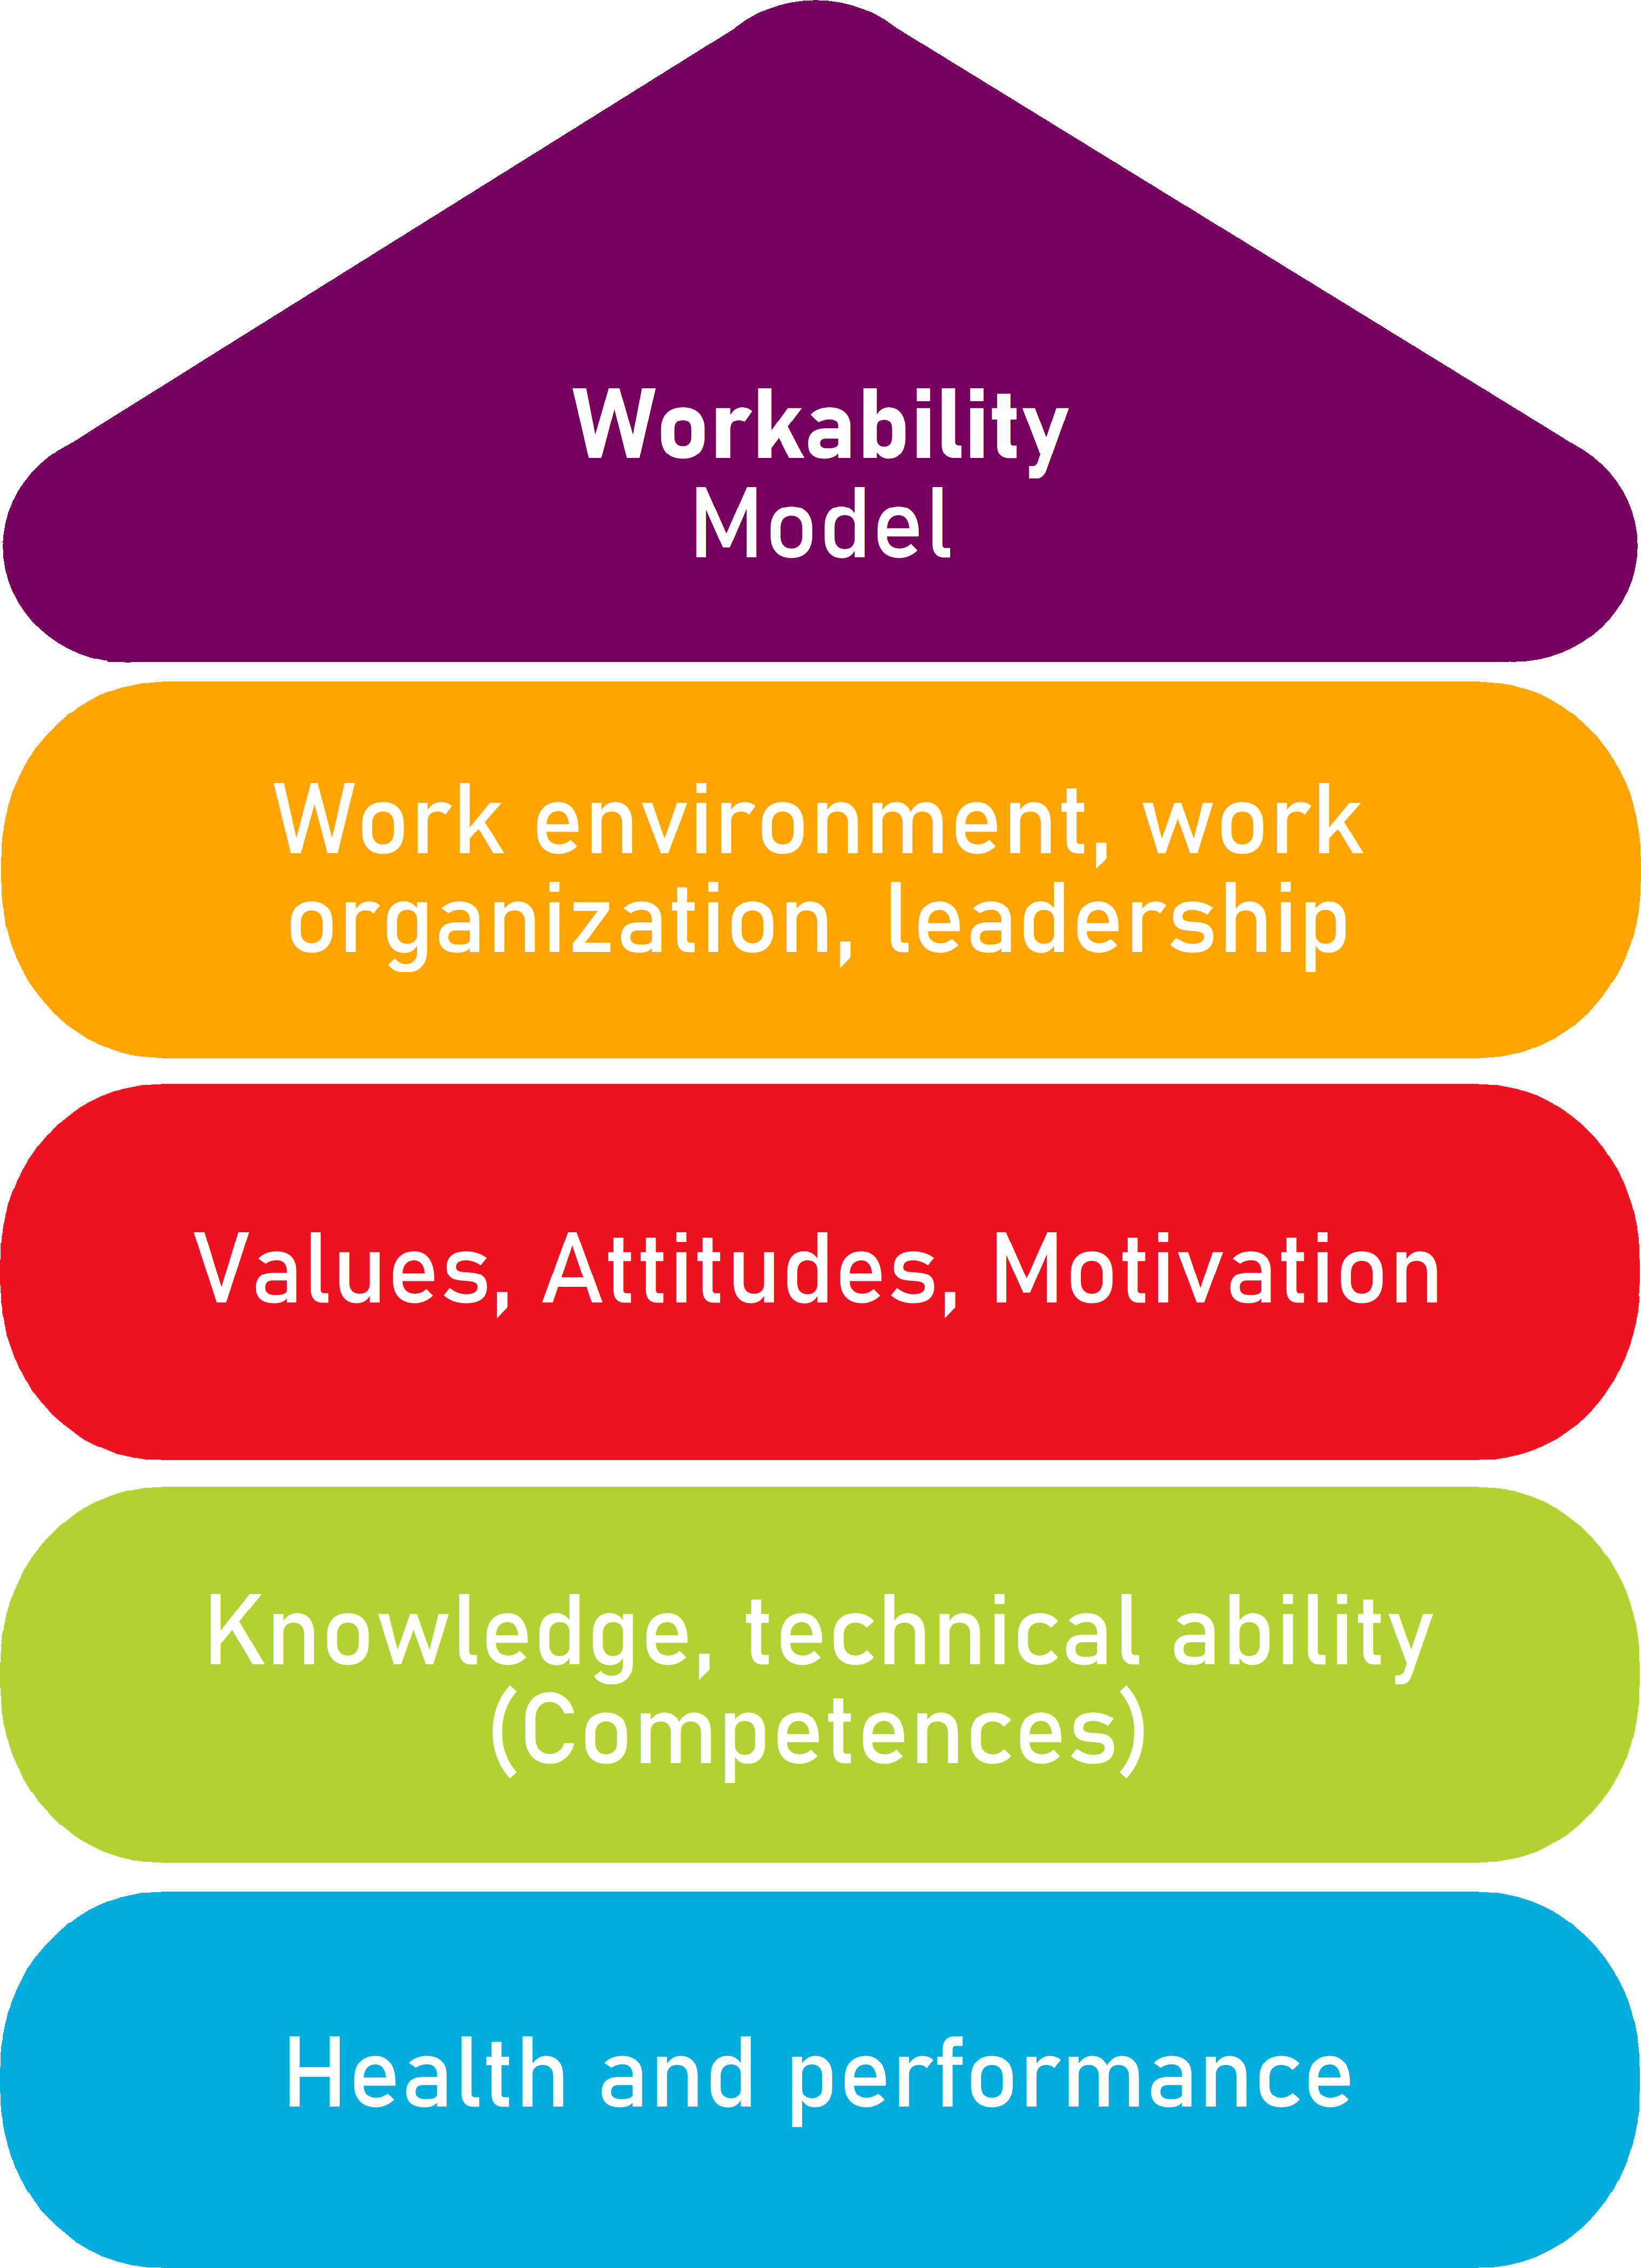 Workability Model